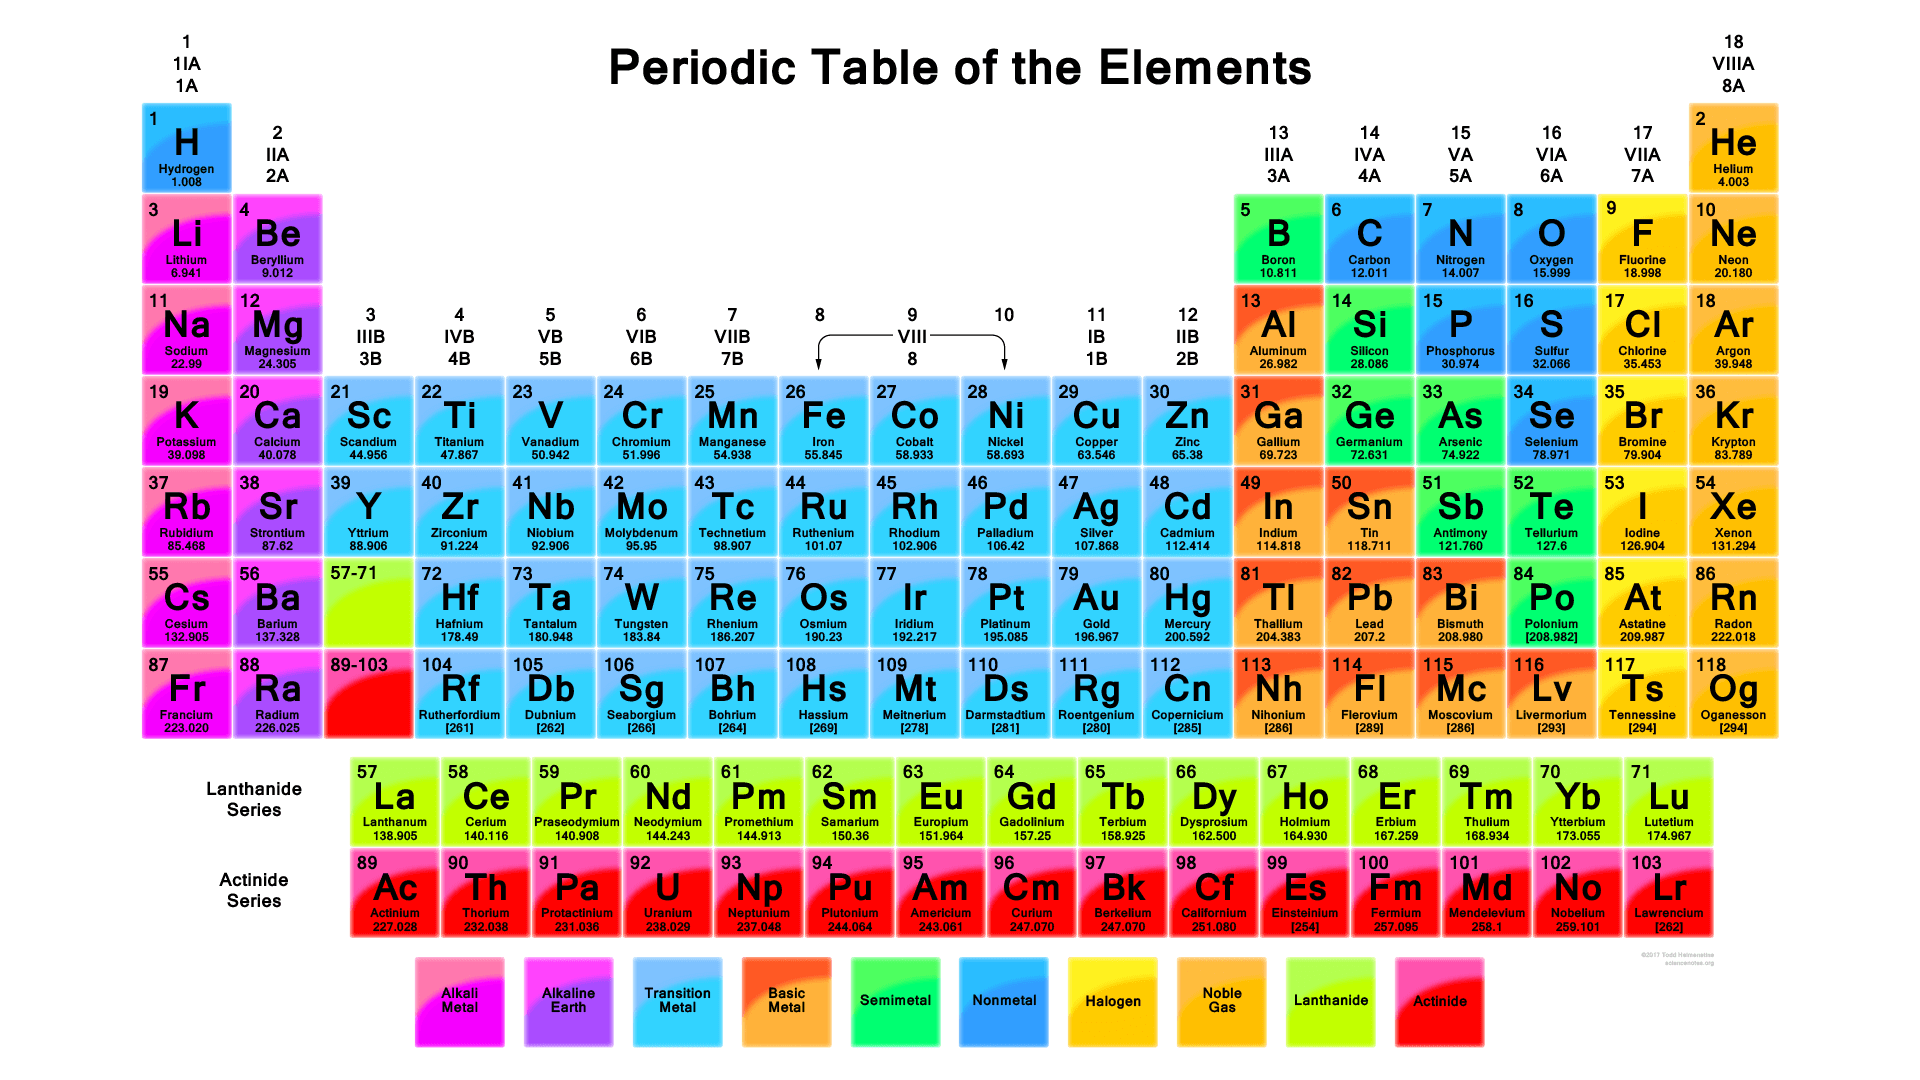 Periodic table pdf 2018 edition with 118 elements table on whitetable on black urtaz